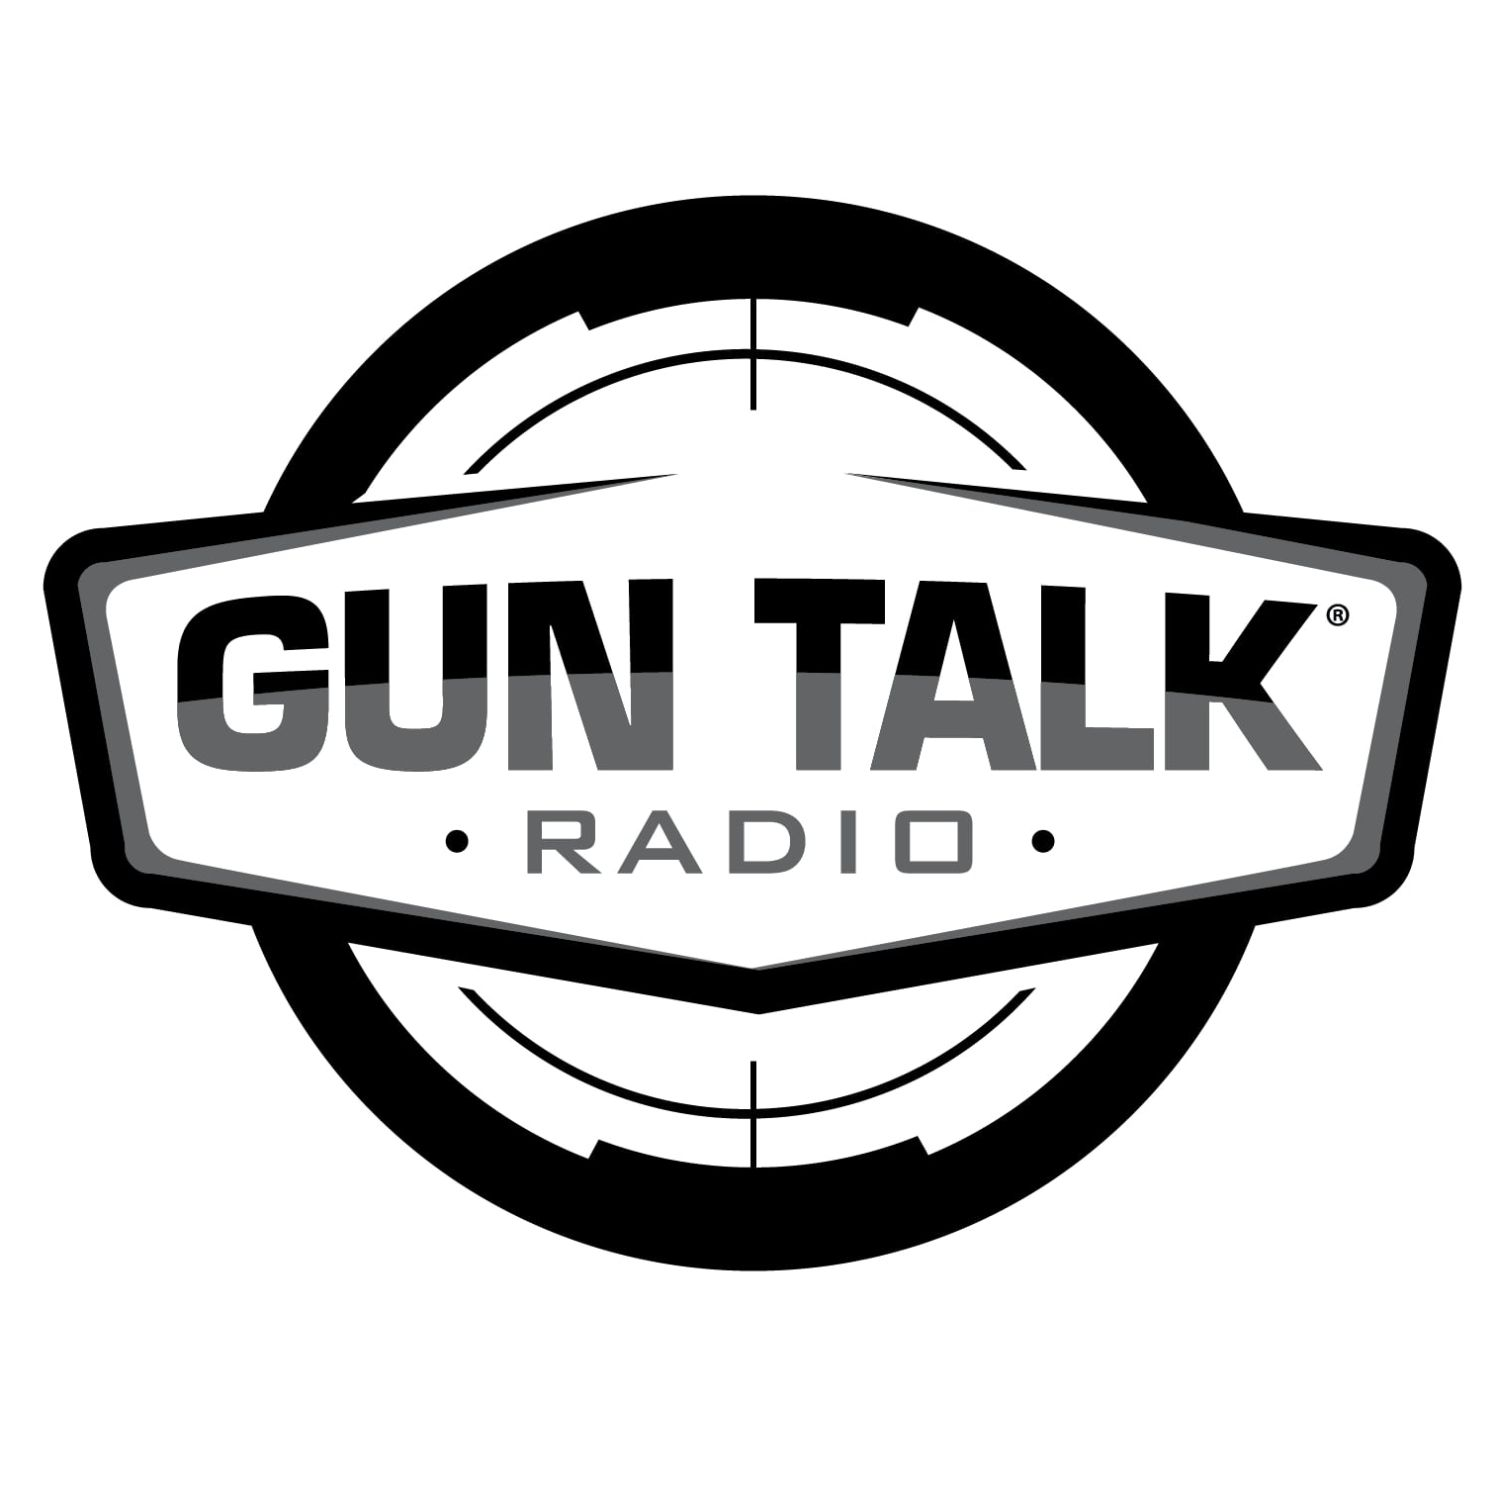 Artwork for Guntalk 2006-12-31 Part C